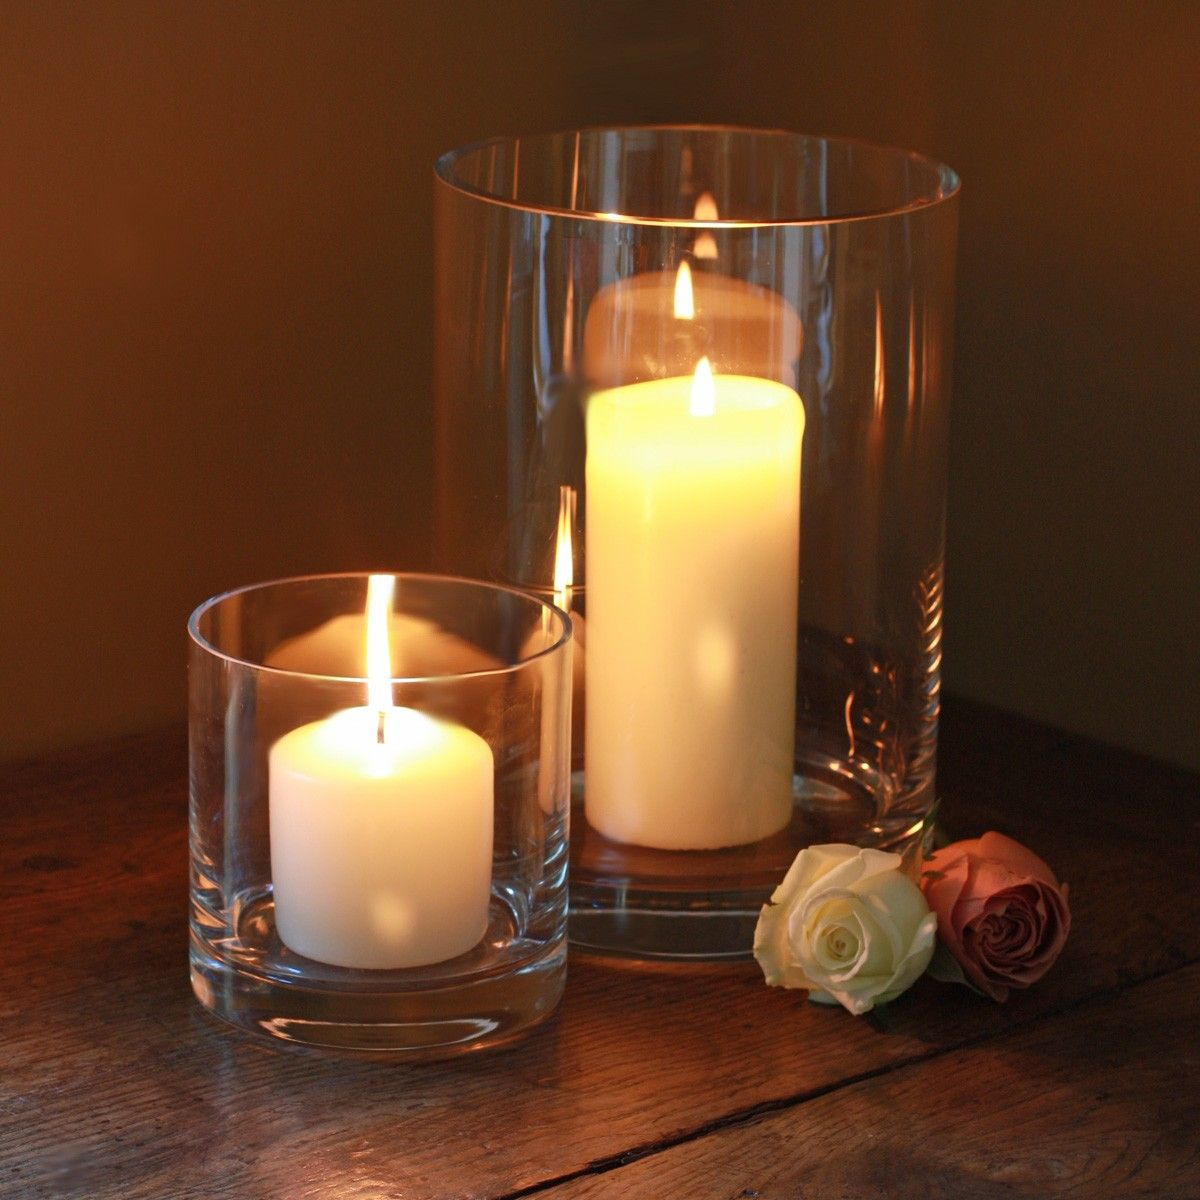 Enchanting Hurricane Vases For Dining Table Accessories Ideas Glass With Candle And Rose Flower